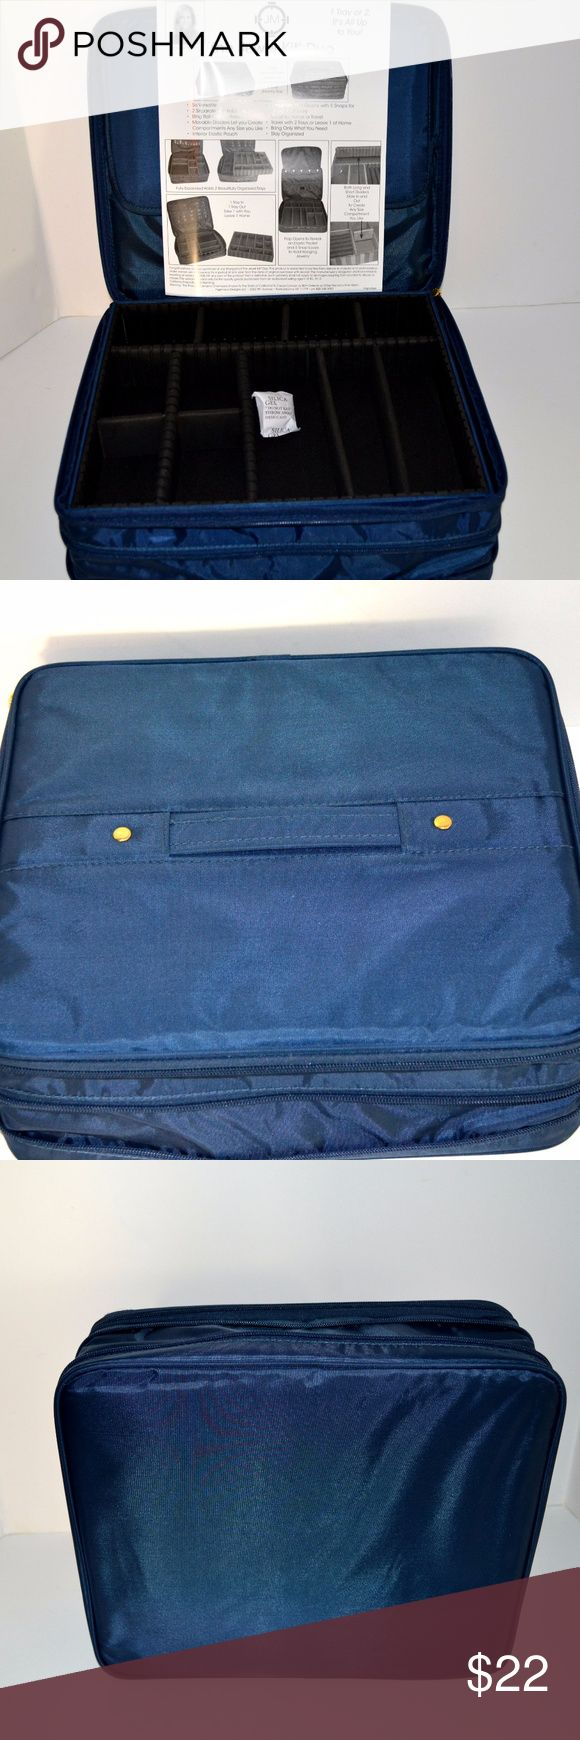 "Joy Mangano Travel Jewelry Expandable Case New used, gorgeous Joy Mangano Travel Jewelry Expandable Case in blue. Use one or two trays. Trays have adjustable tabs so your jewelry will fit perfectly. Please see the instruction picture to fully understand how versatile this piece is.  Top handle. Zippered openings. 13"" x 11"" Joy Mangano Bags Travel Bags"